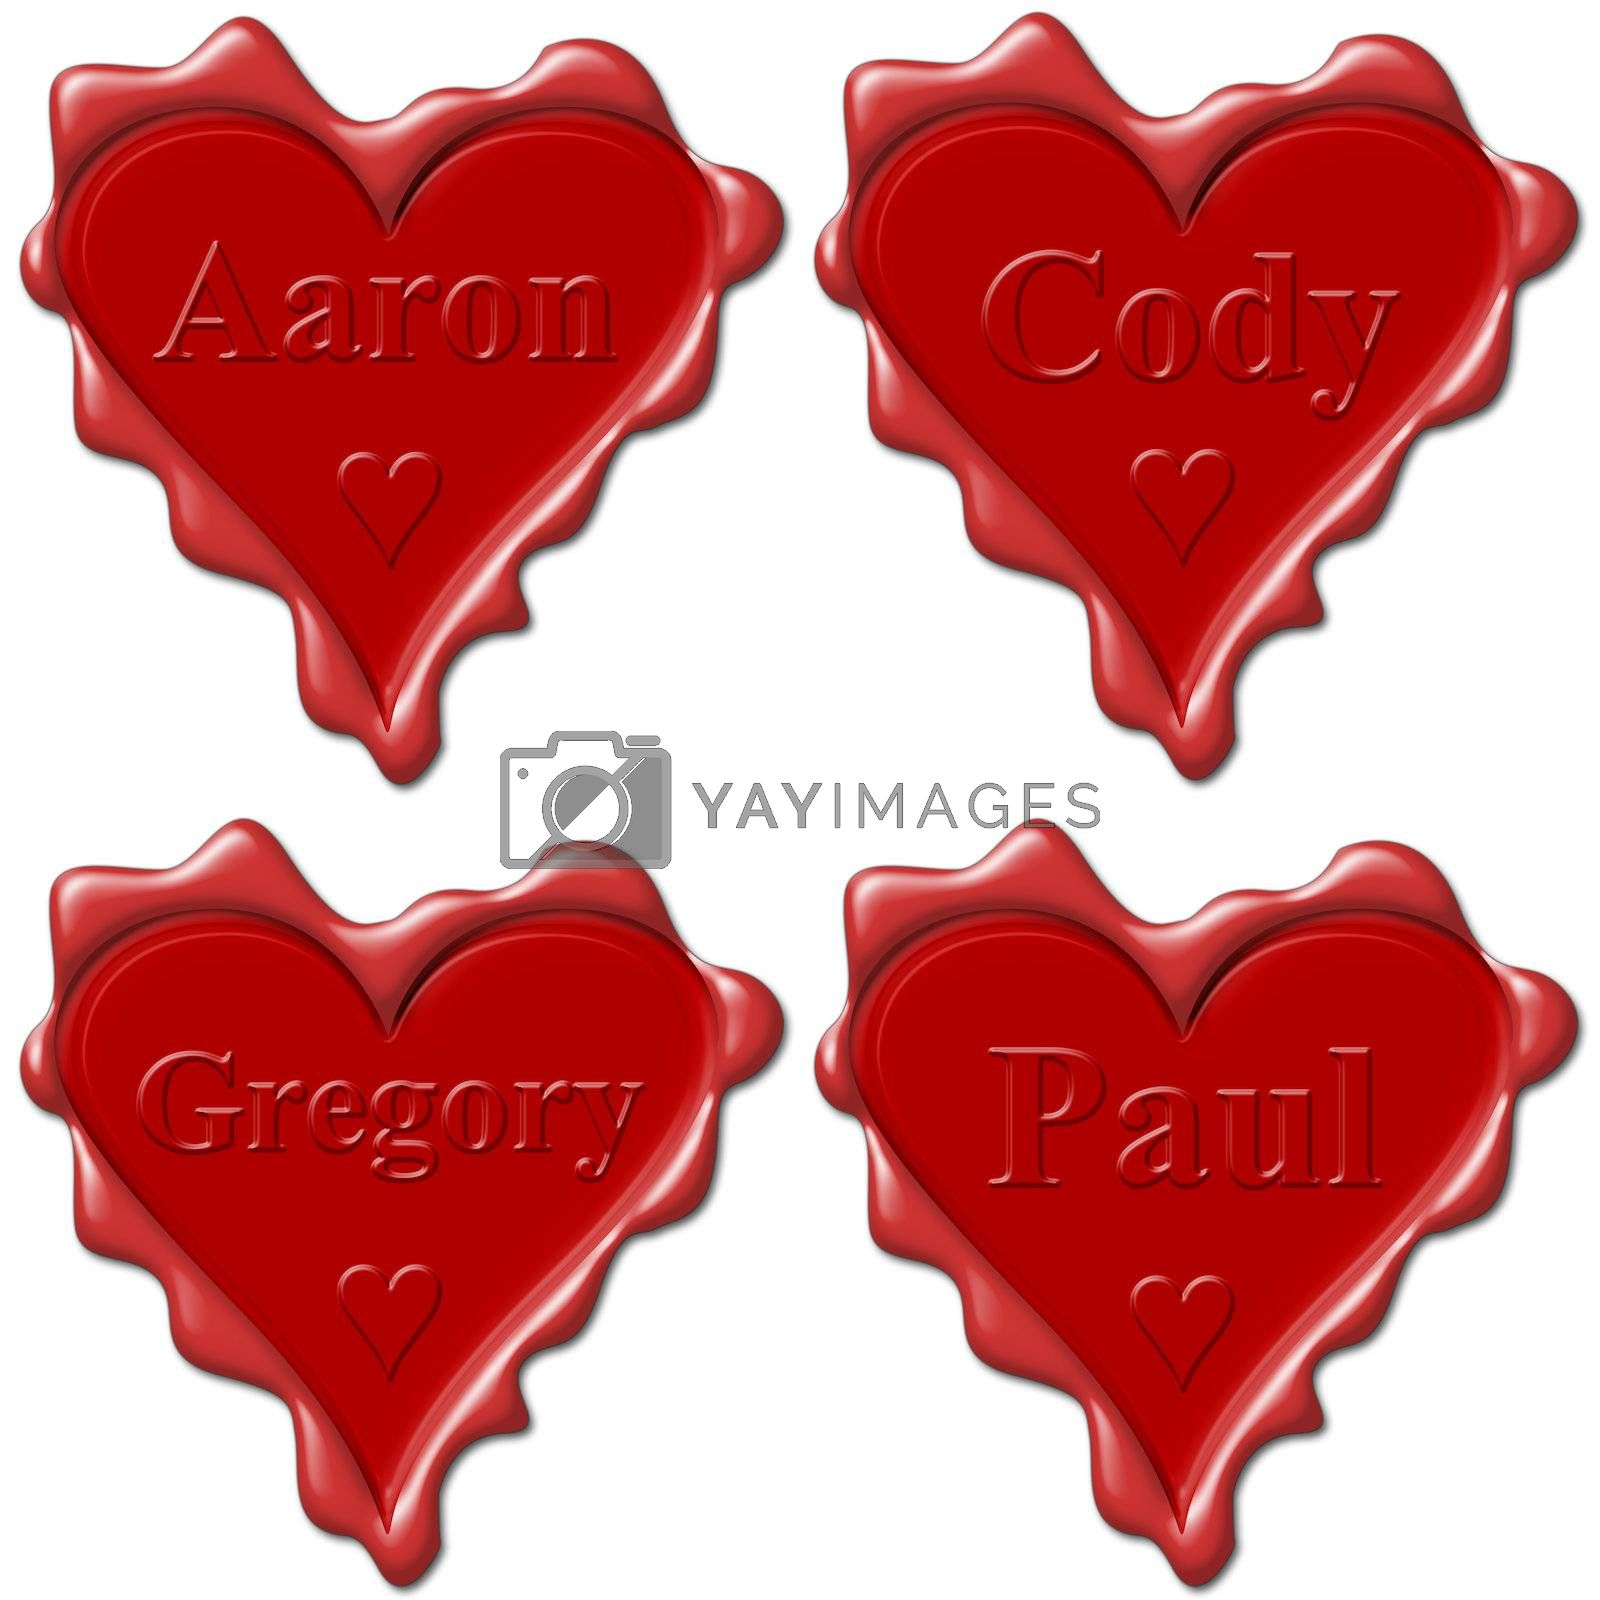 Valentine love hearts with names: Aaron, Cody, Gregory, Paul